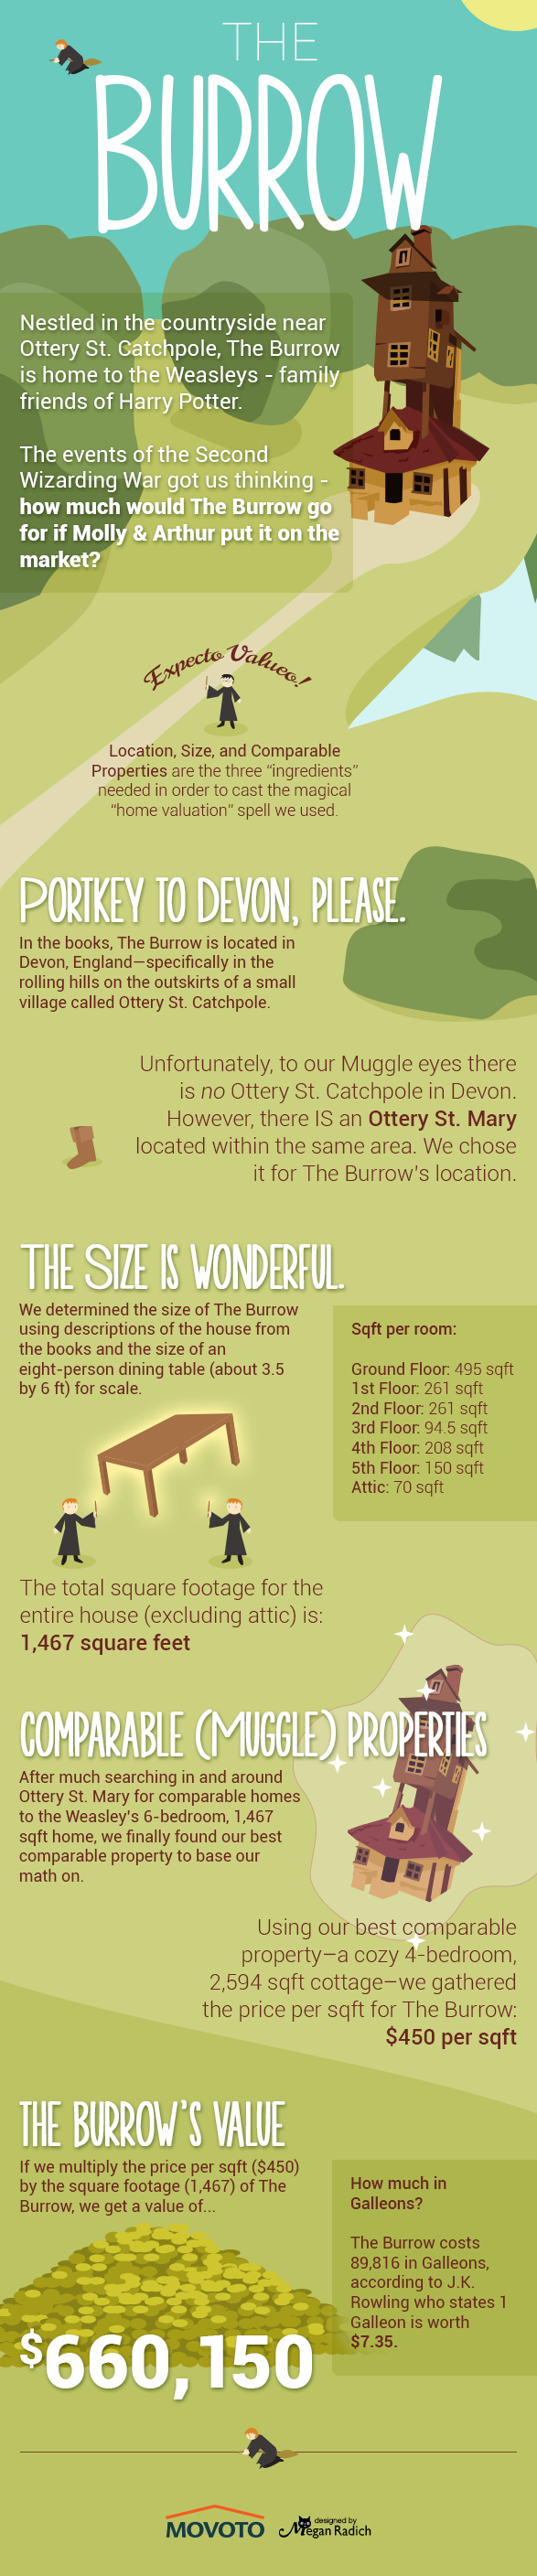 burrow infographic